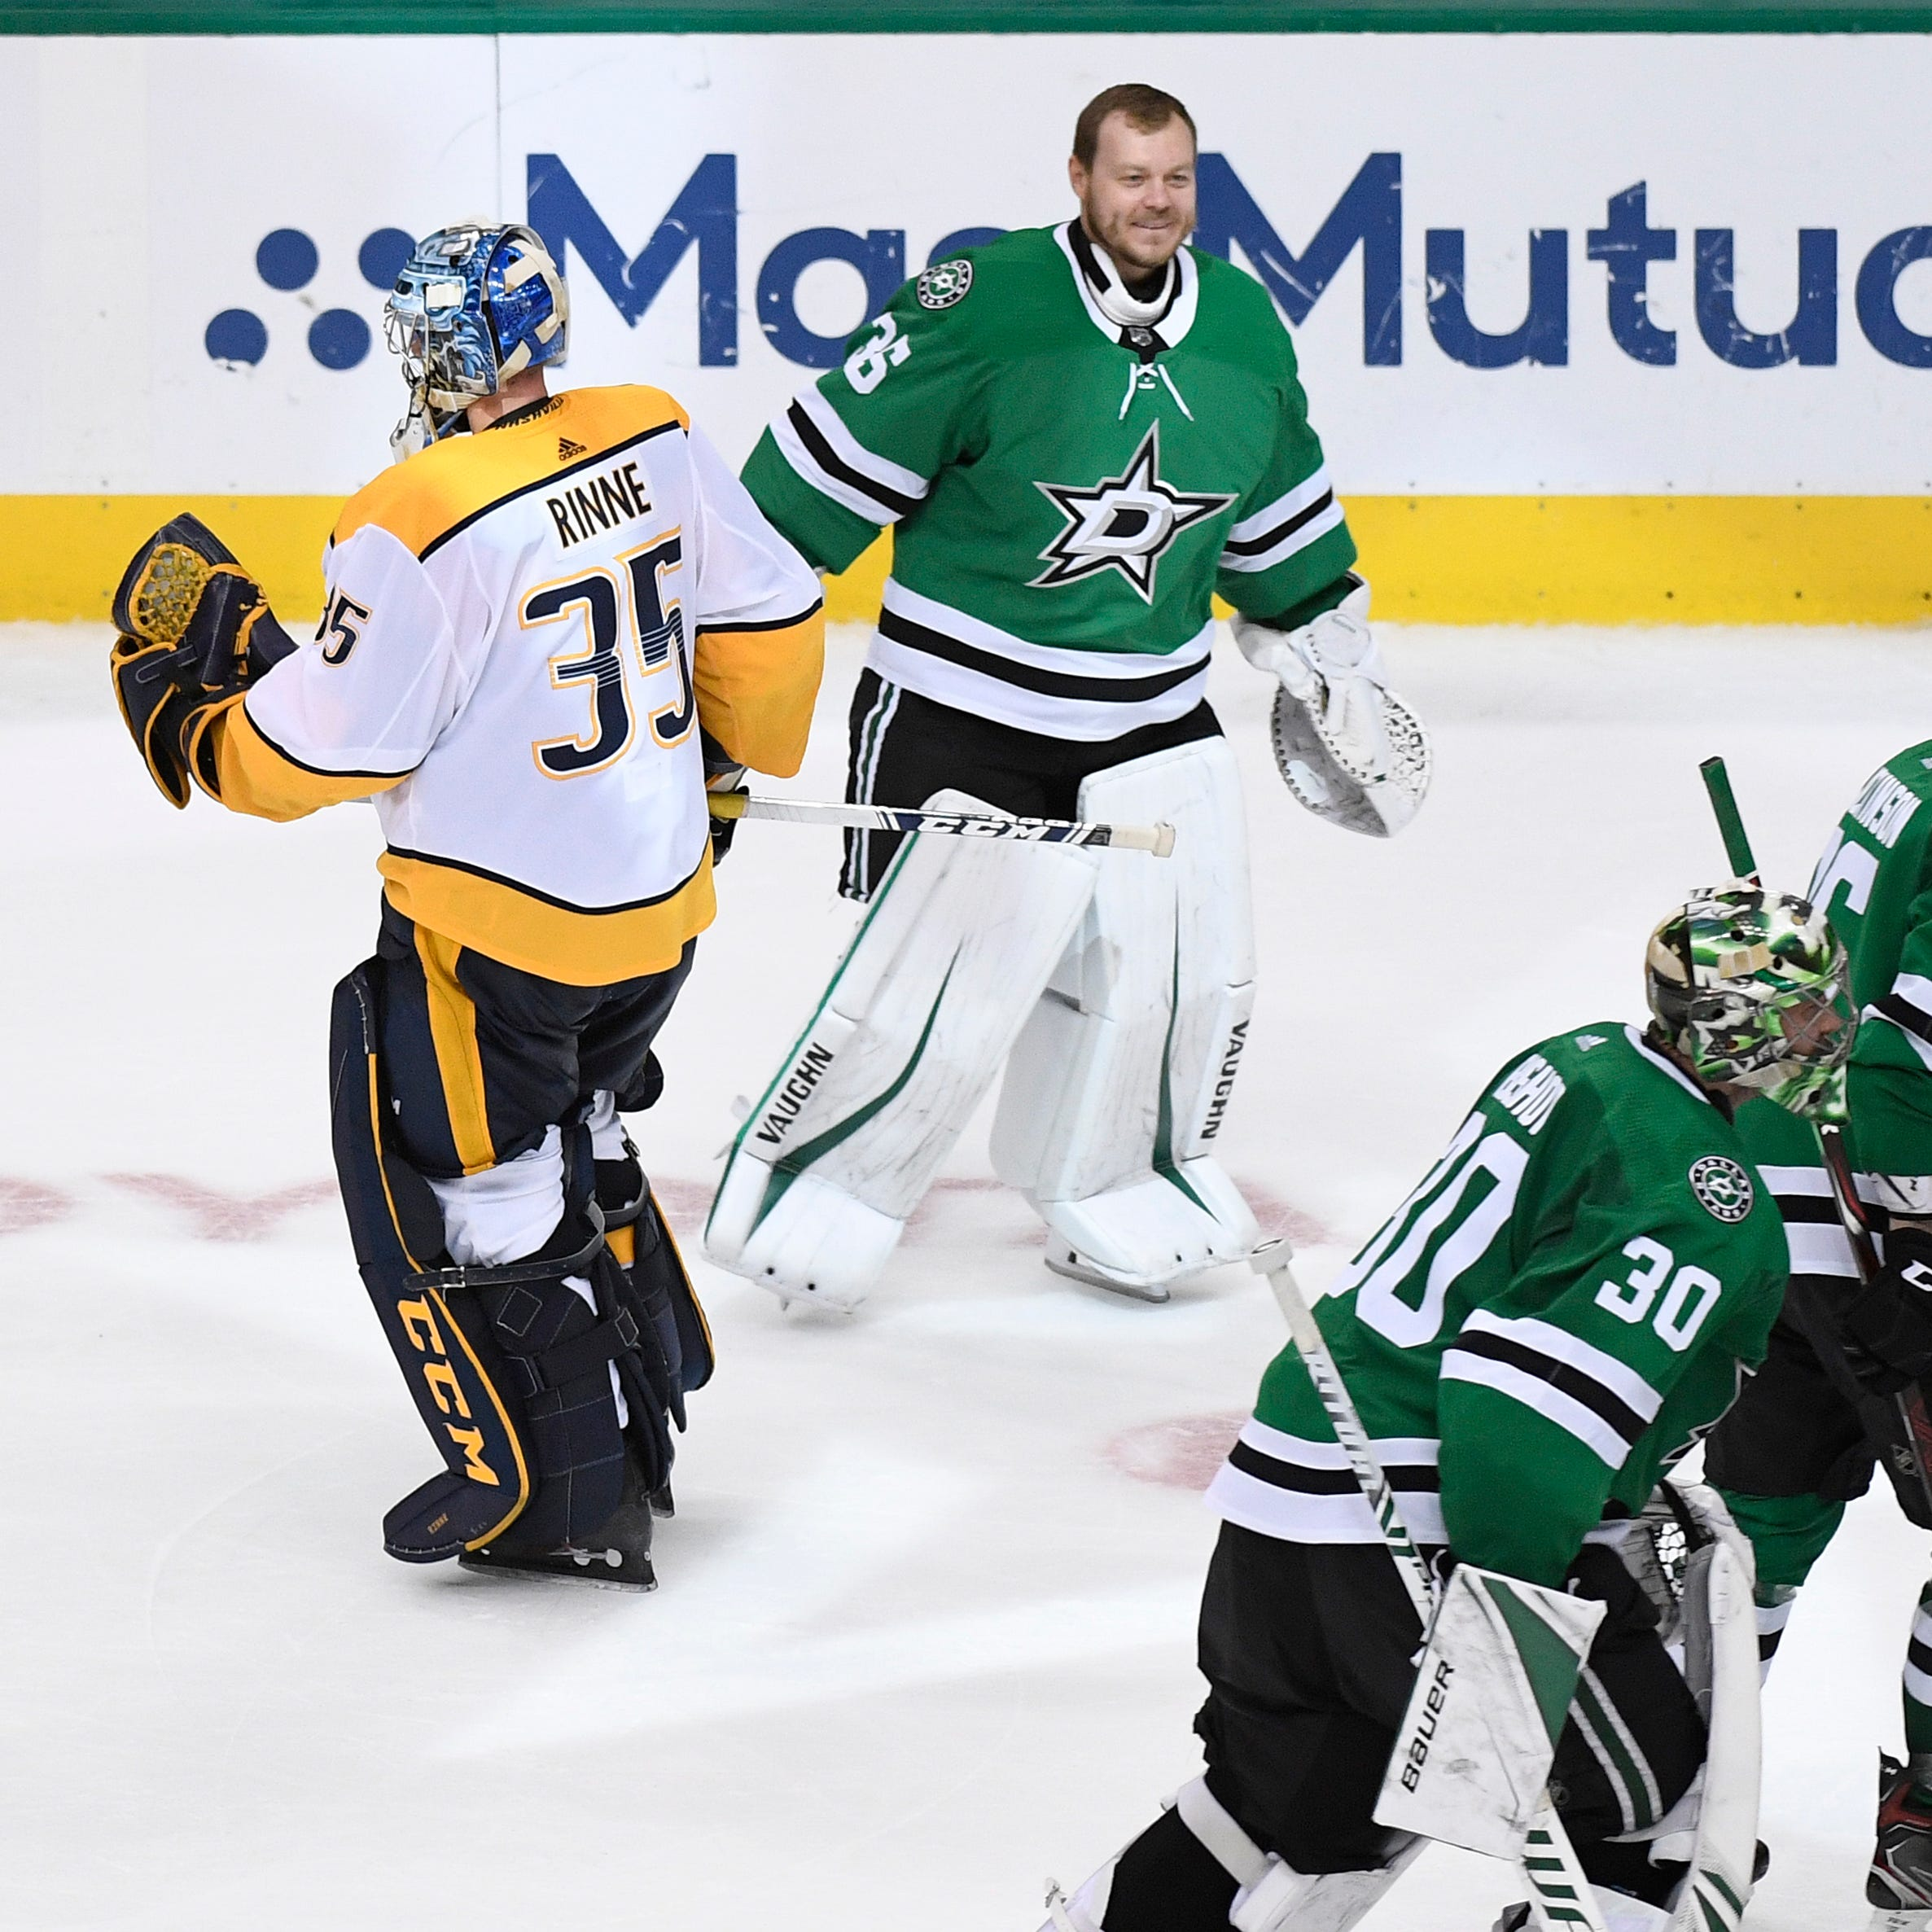 Plenty of questions await answers after Predators fall to Stars in first round